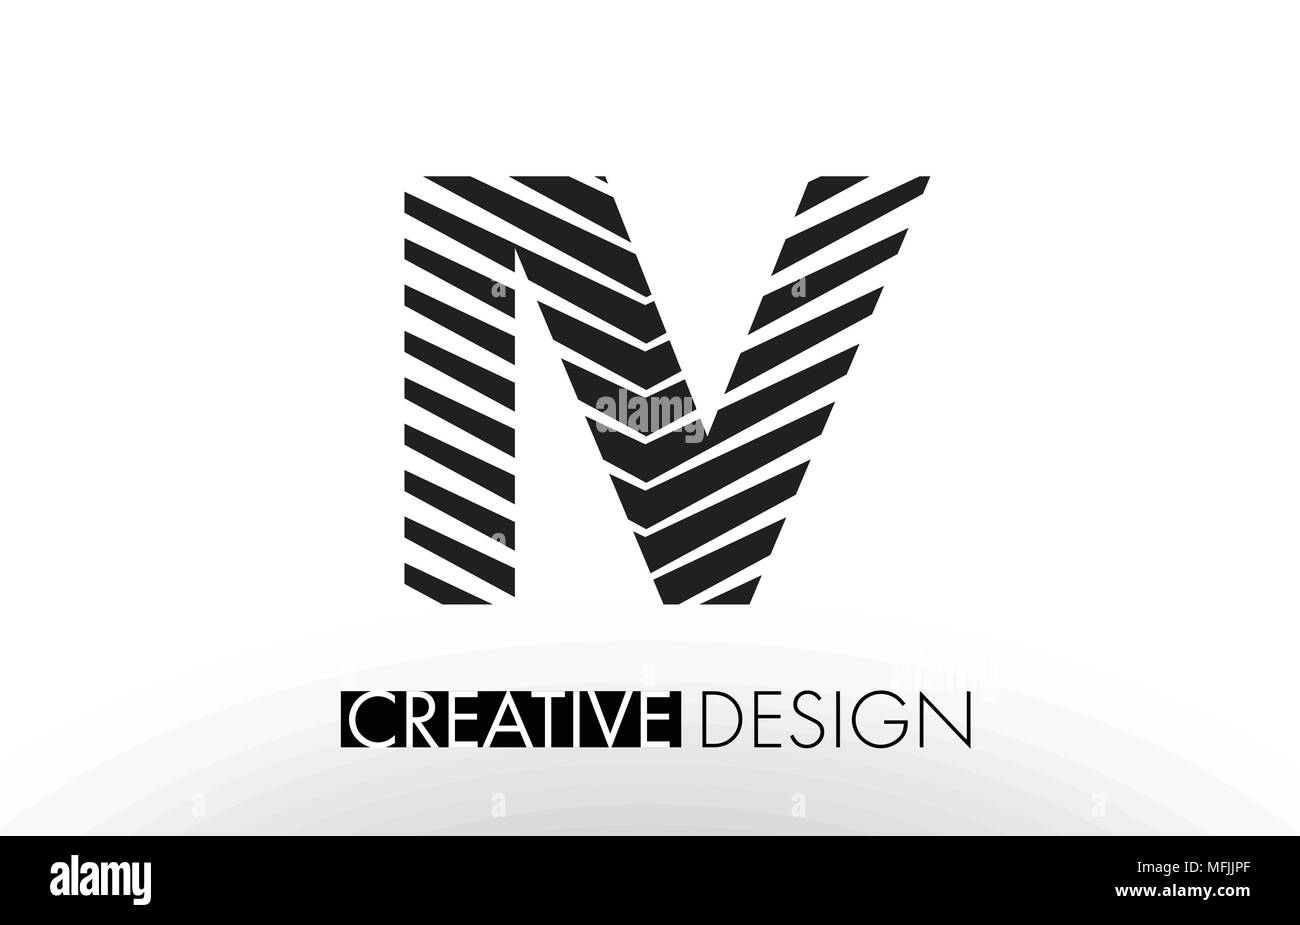 IV I V Lines Letter Design with Creative Elegant Zebra Vector Illustration. - Stock Vector